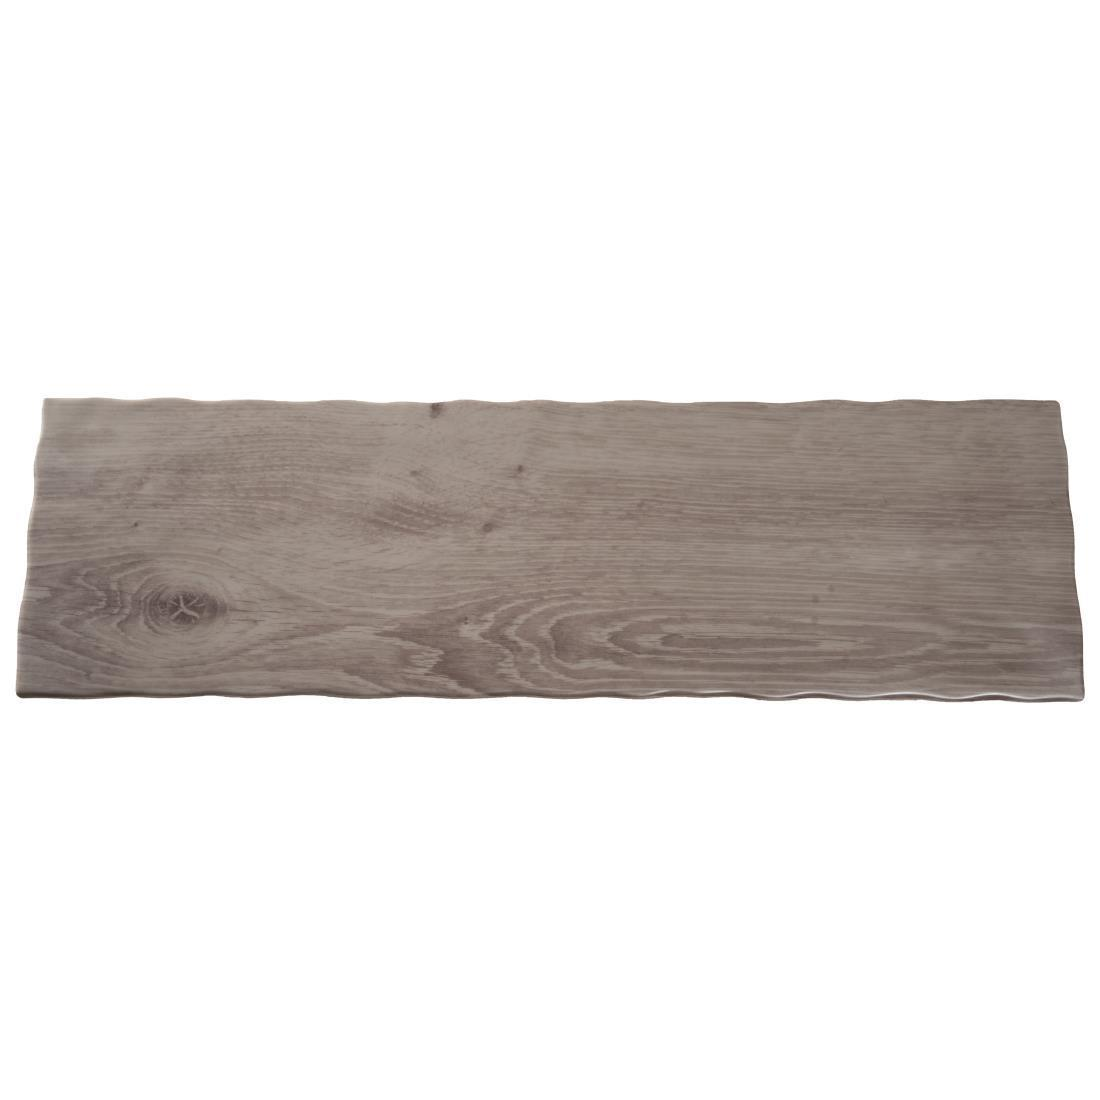 APS Wood Effect Melamine Tray GN 2/4 - Each - GK649